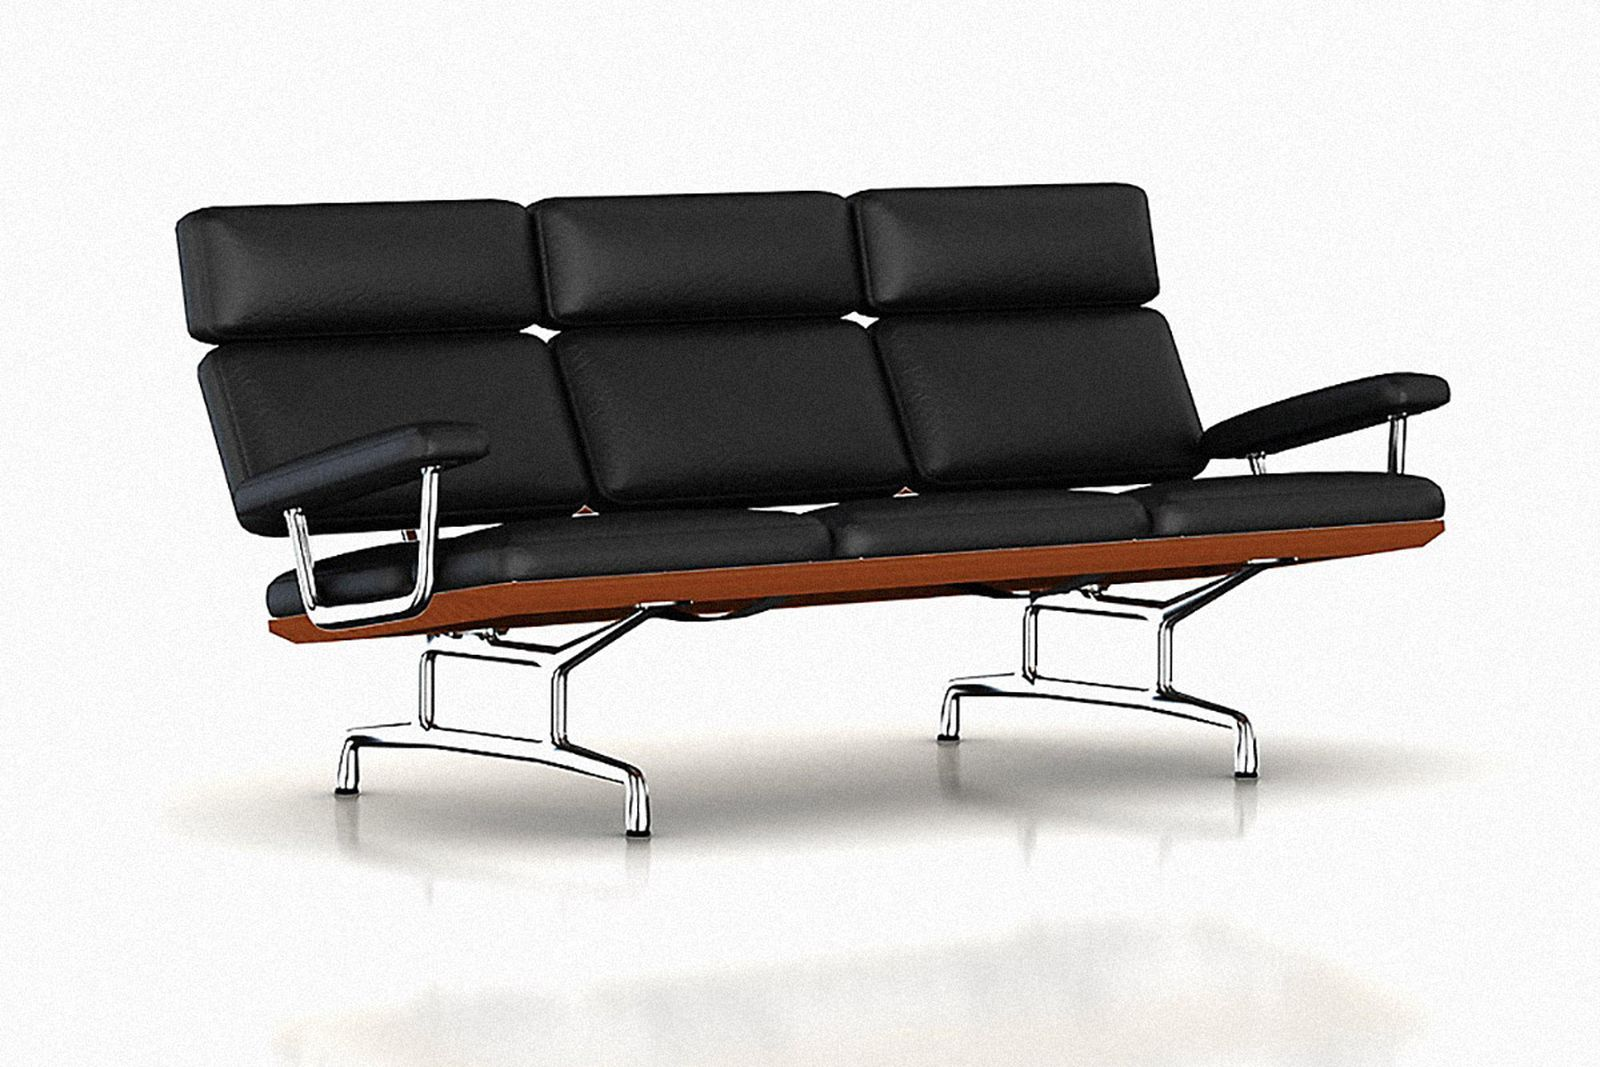 good-time-upgrade-couch-01